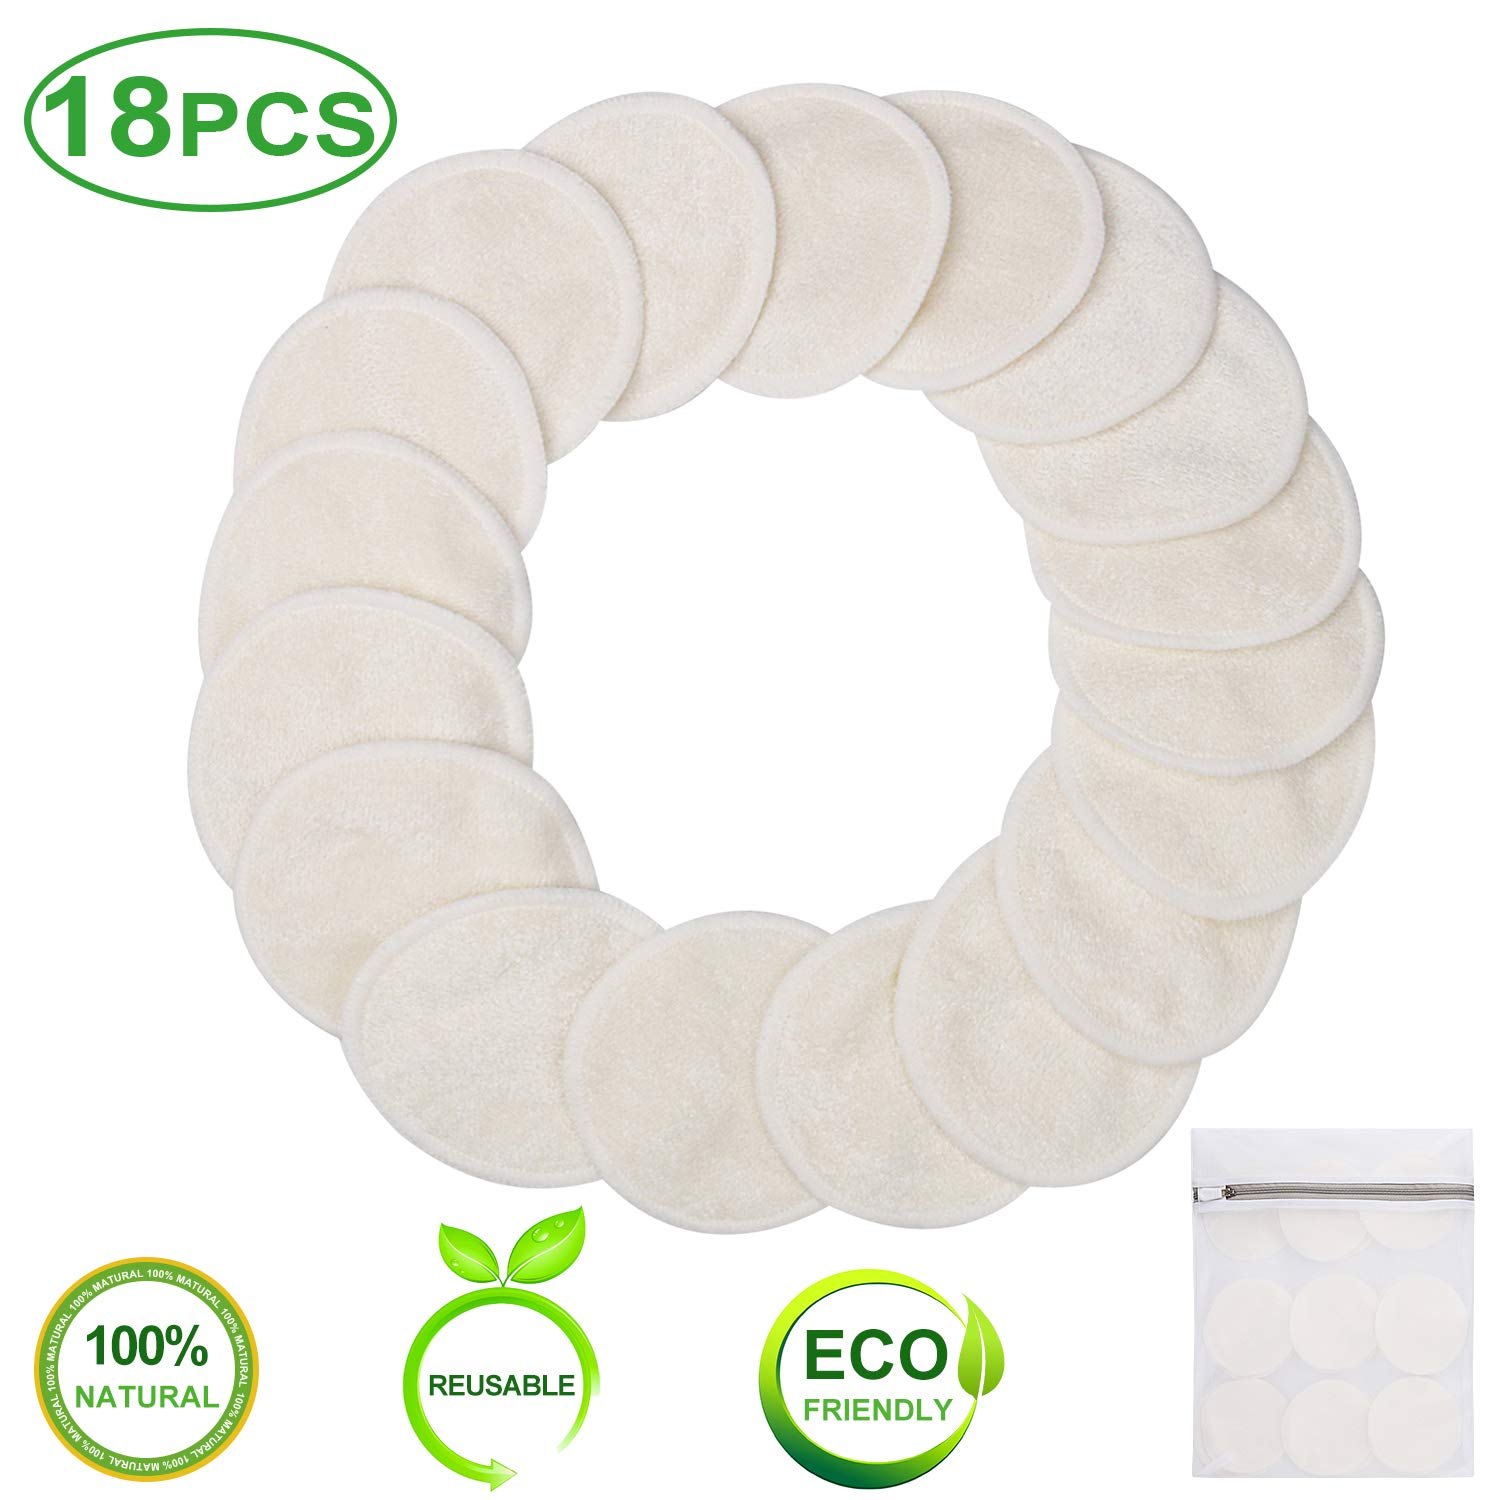 Reusable Makeup Remover Pads -18 Packs Washable Organic Cotton Rounds - Soft Natural Bamboo Face Pads - 2 Layers Facial Pads Cleansing Wipe Cloth with Laundry Bag (Bamboo Velour) by D DINGRICH